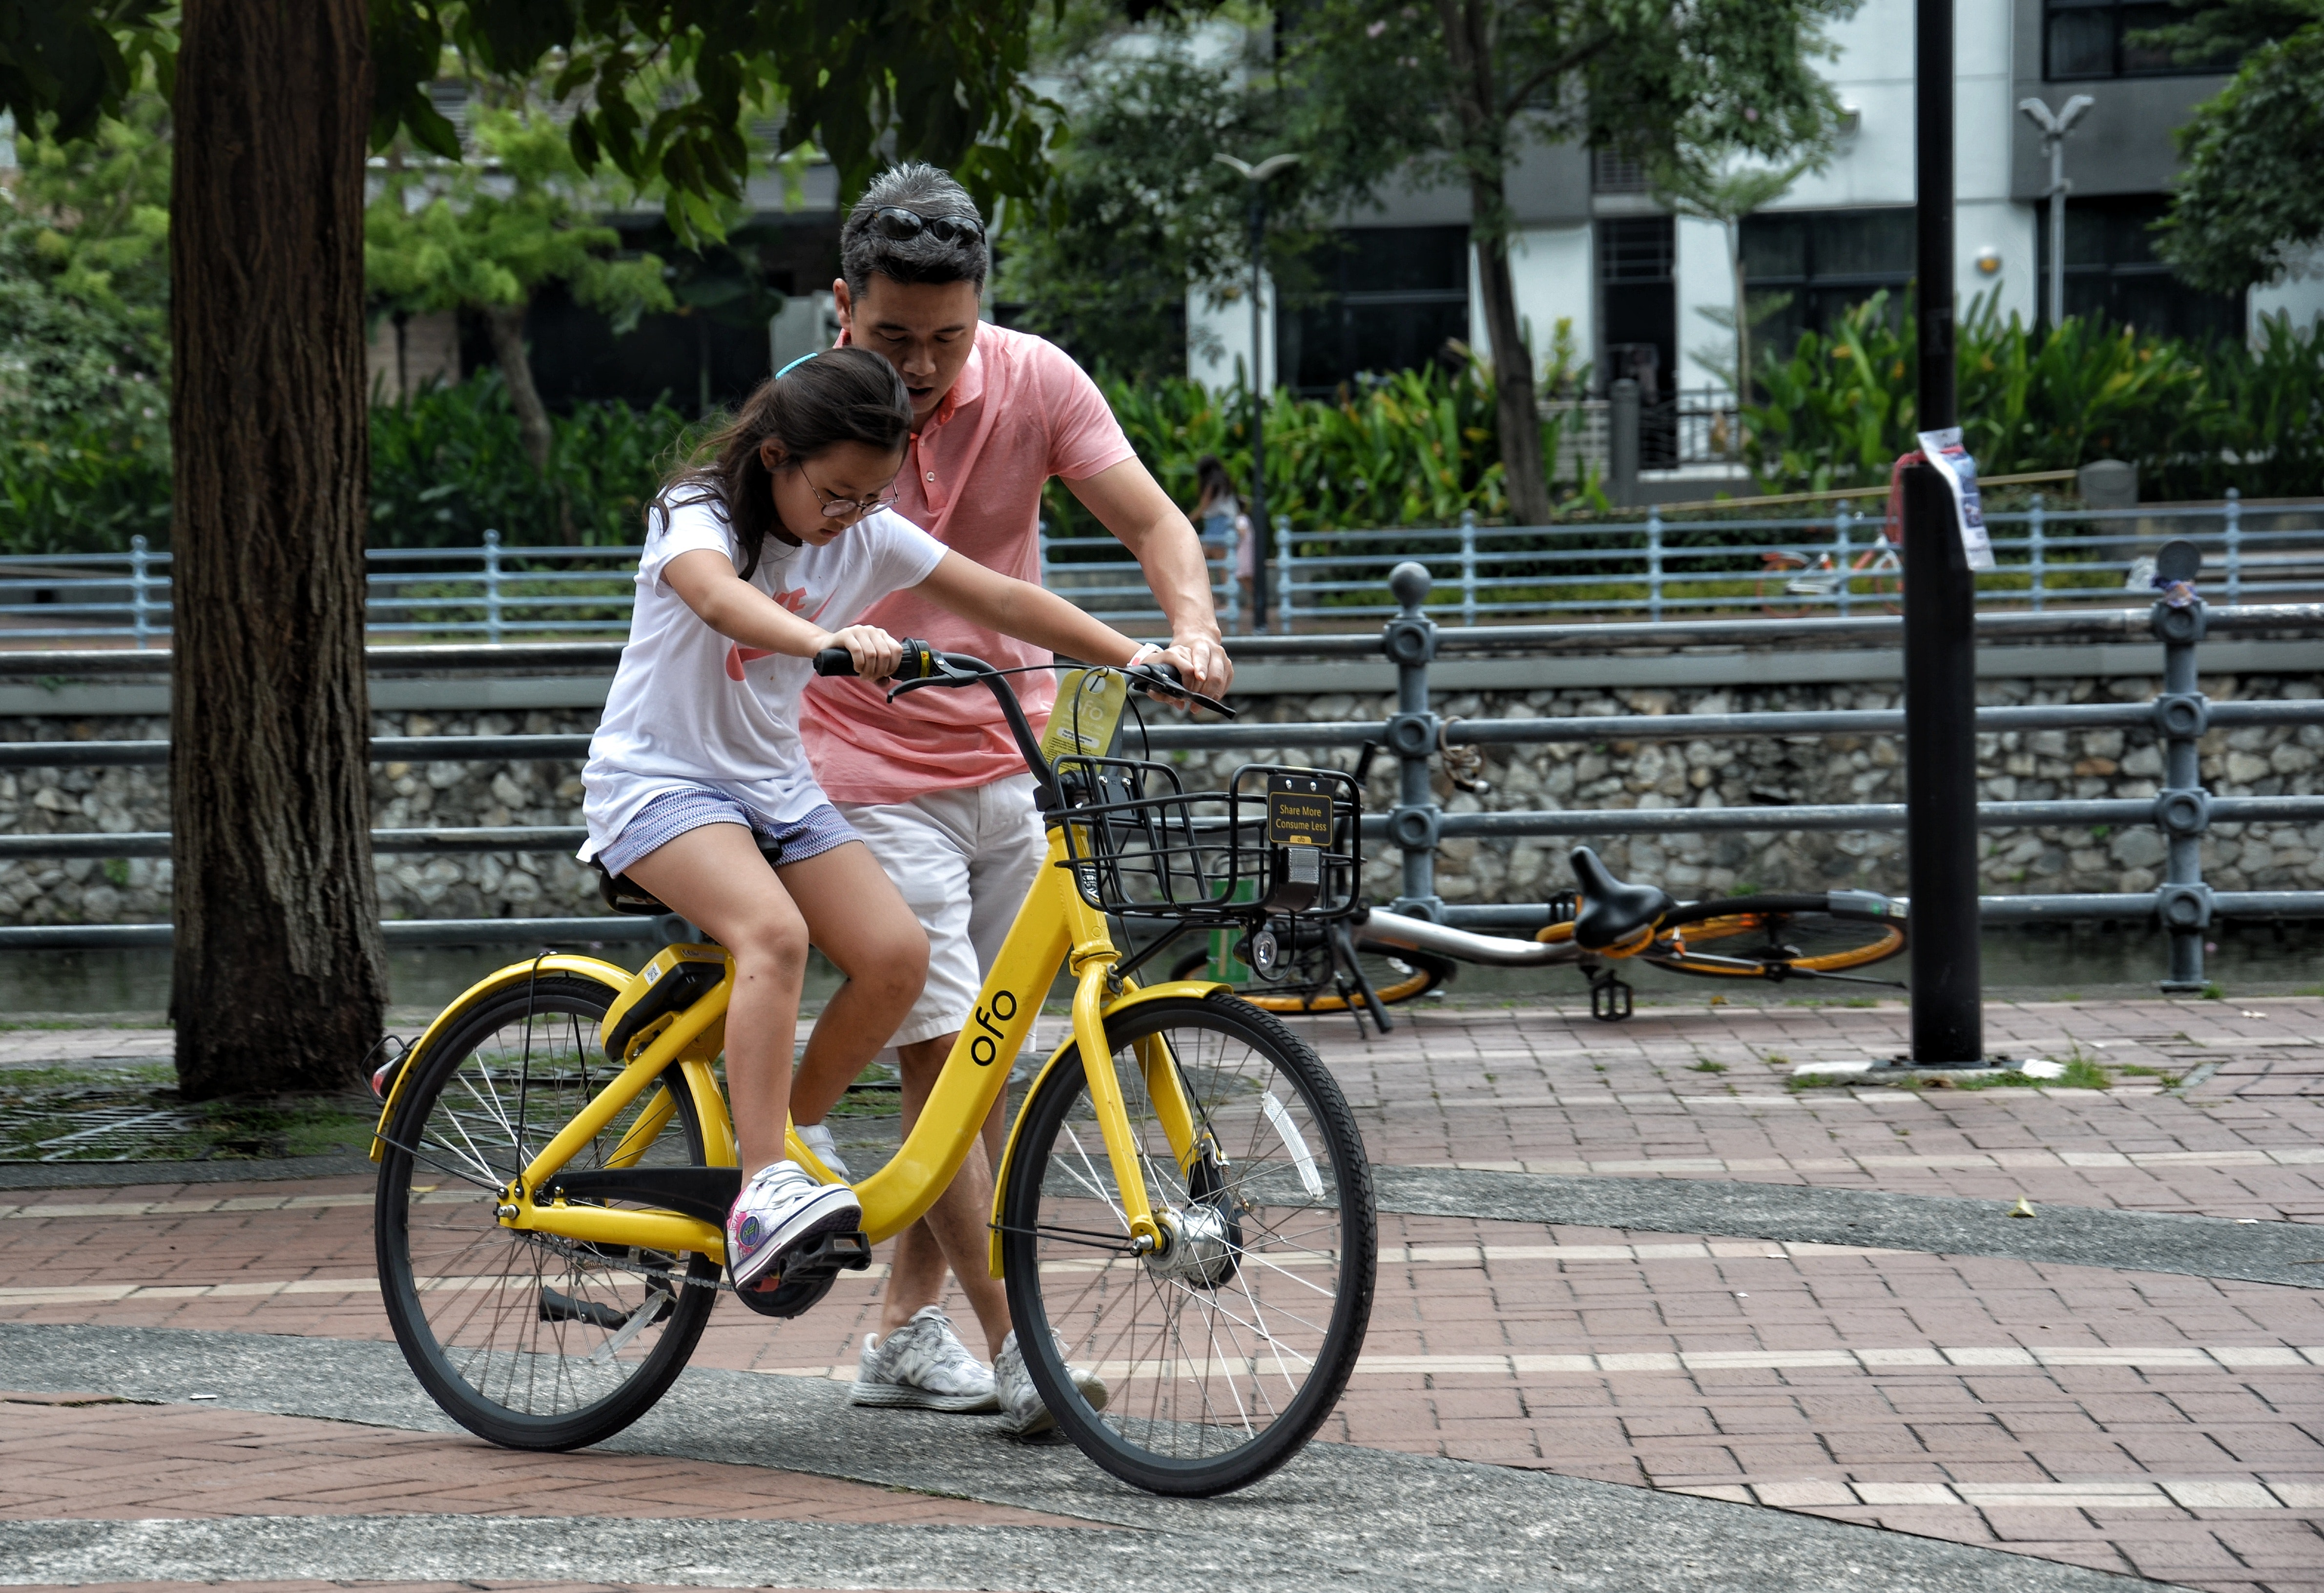 active-adult-bicycle-1005803